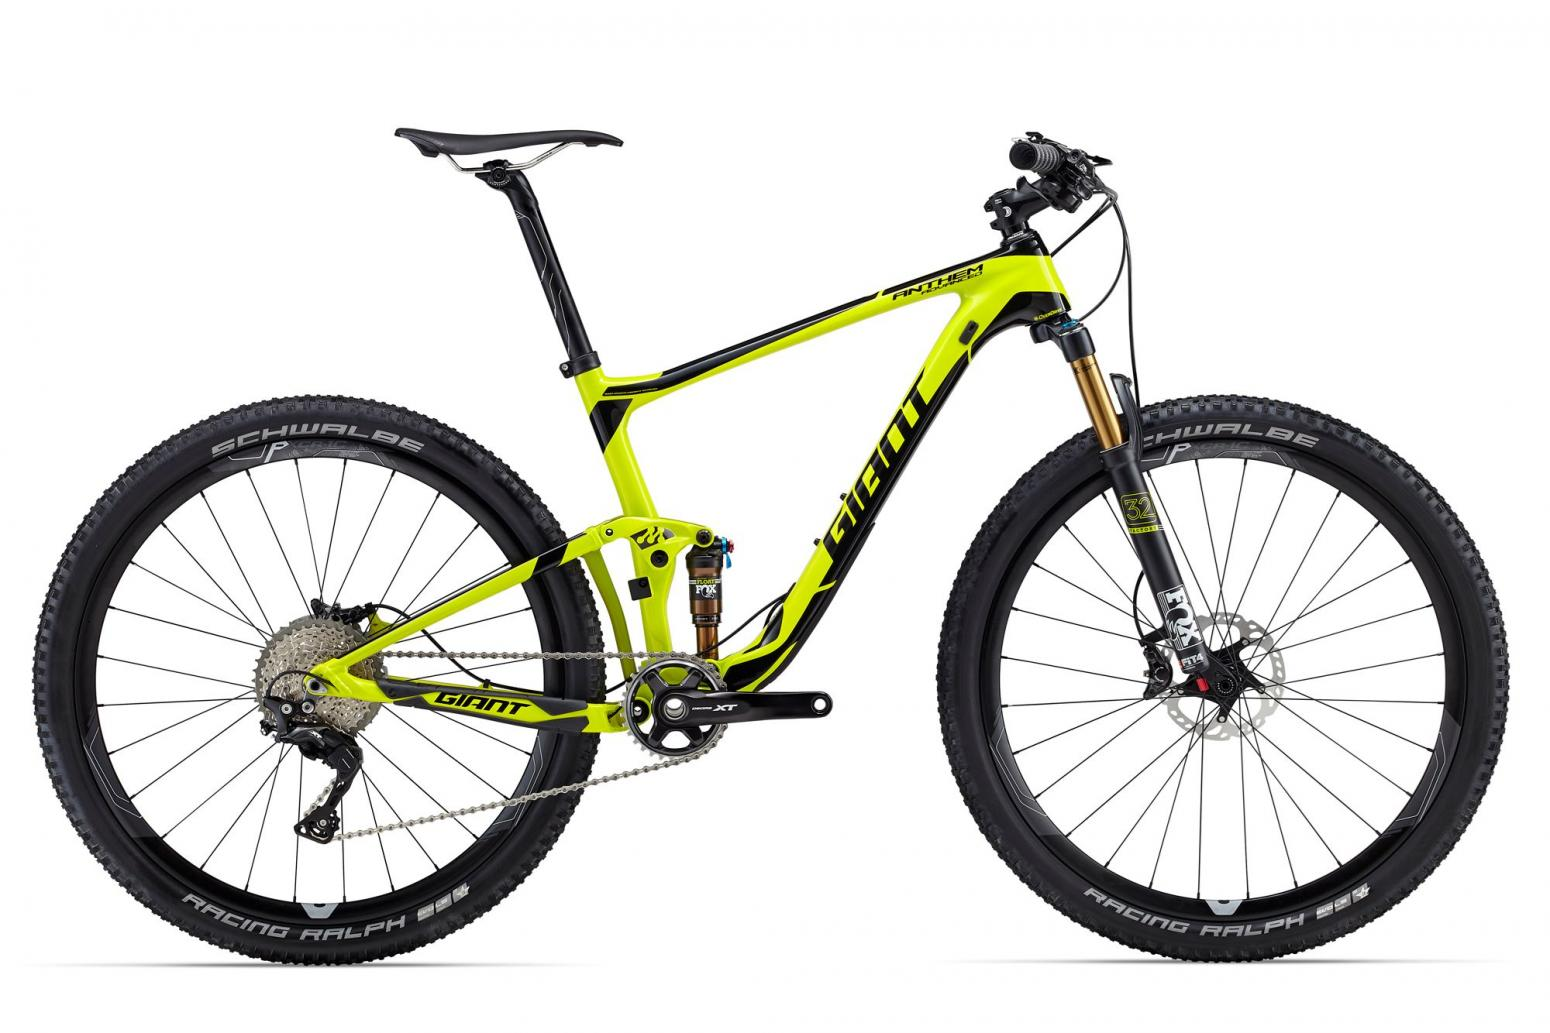 Giant MTB Trail/Race Anthem Advanced 27.5 1 2016